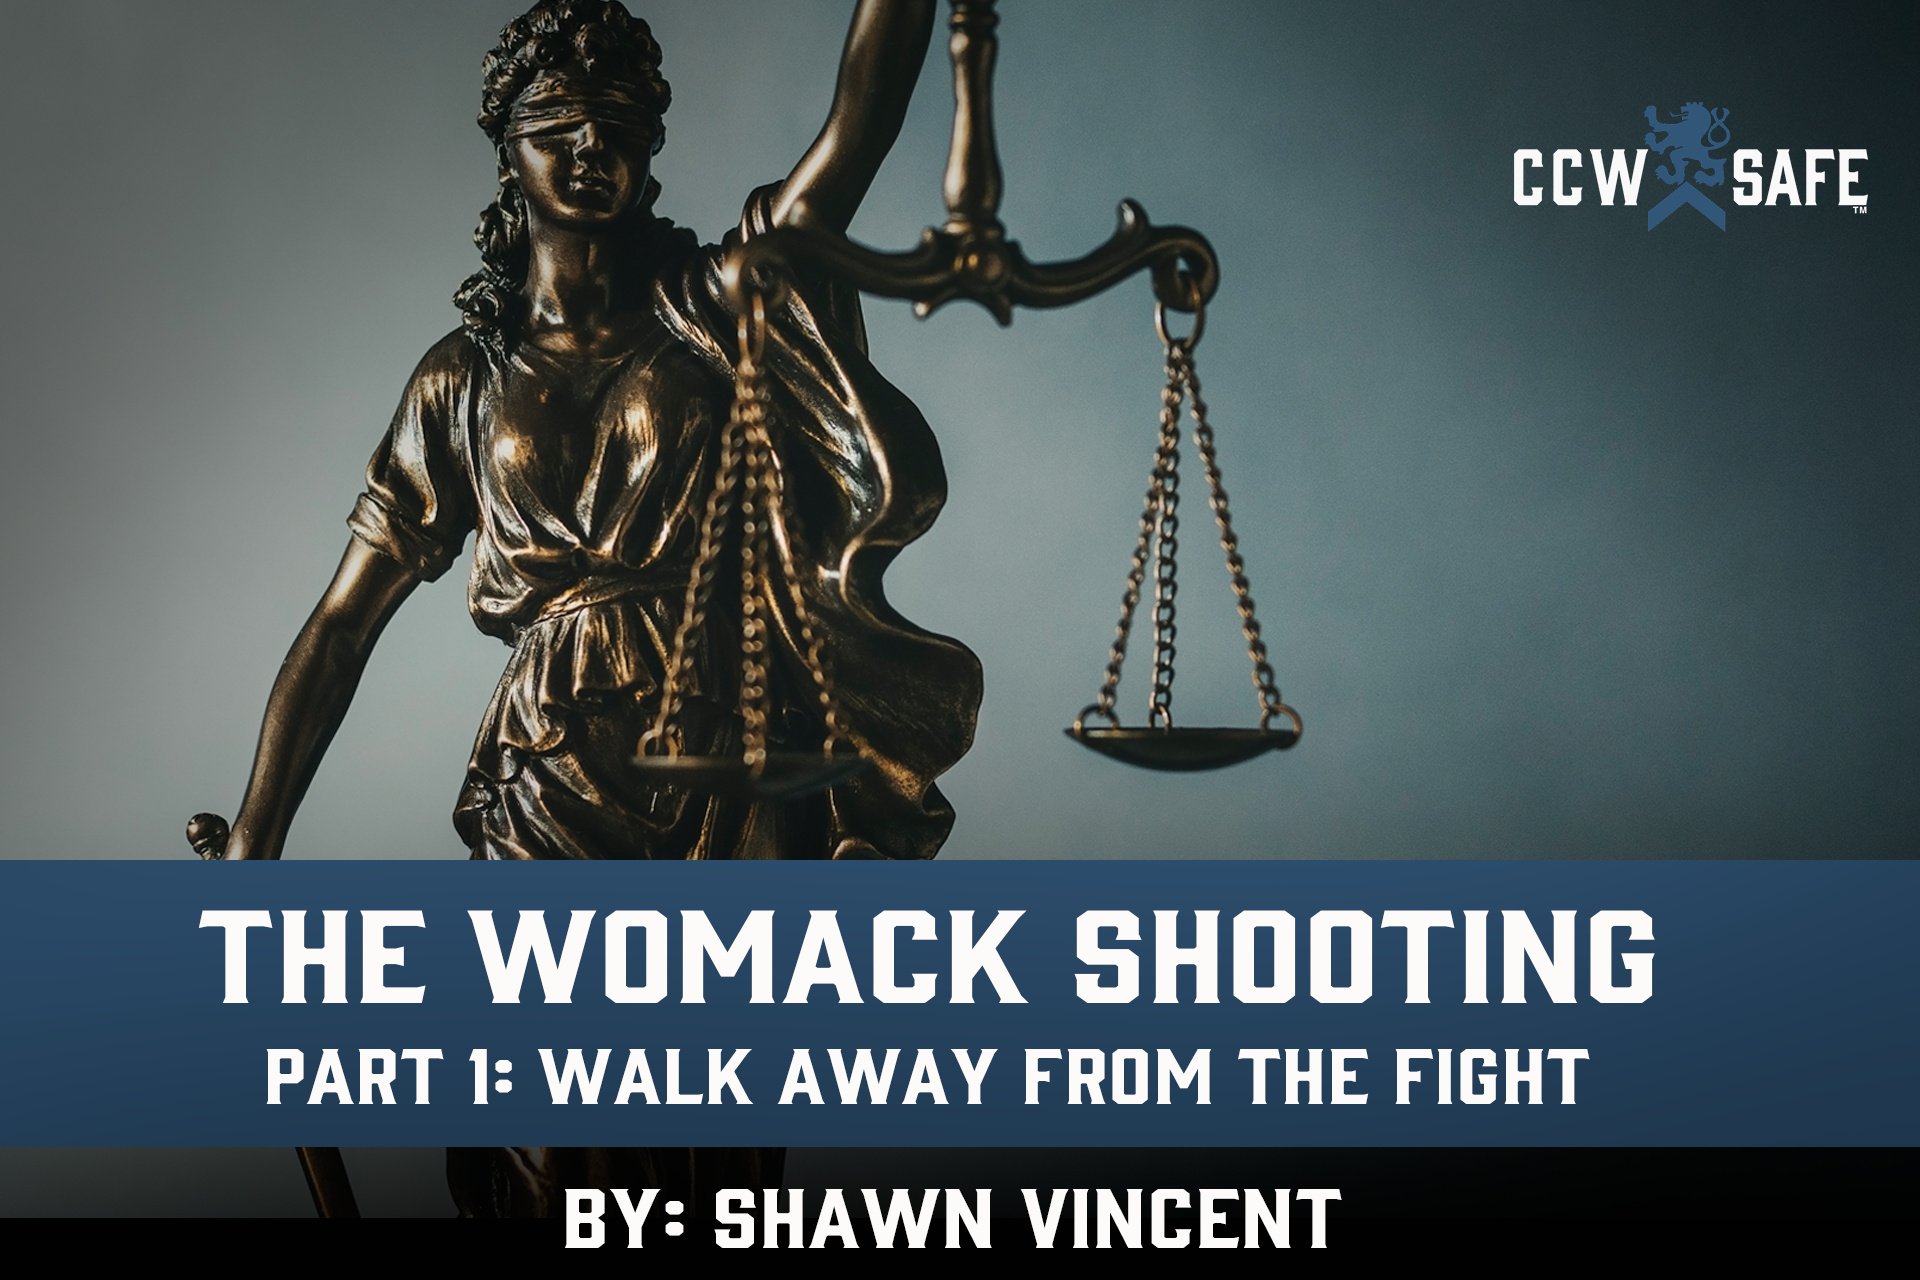 The Womack Shooting Part 1: Walk Away From the Fight